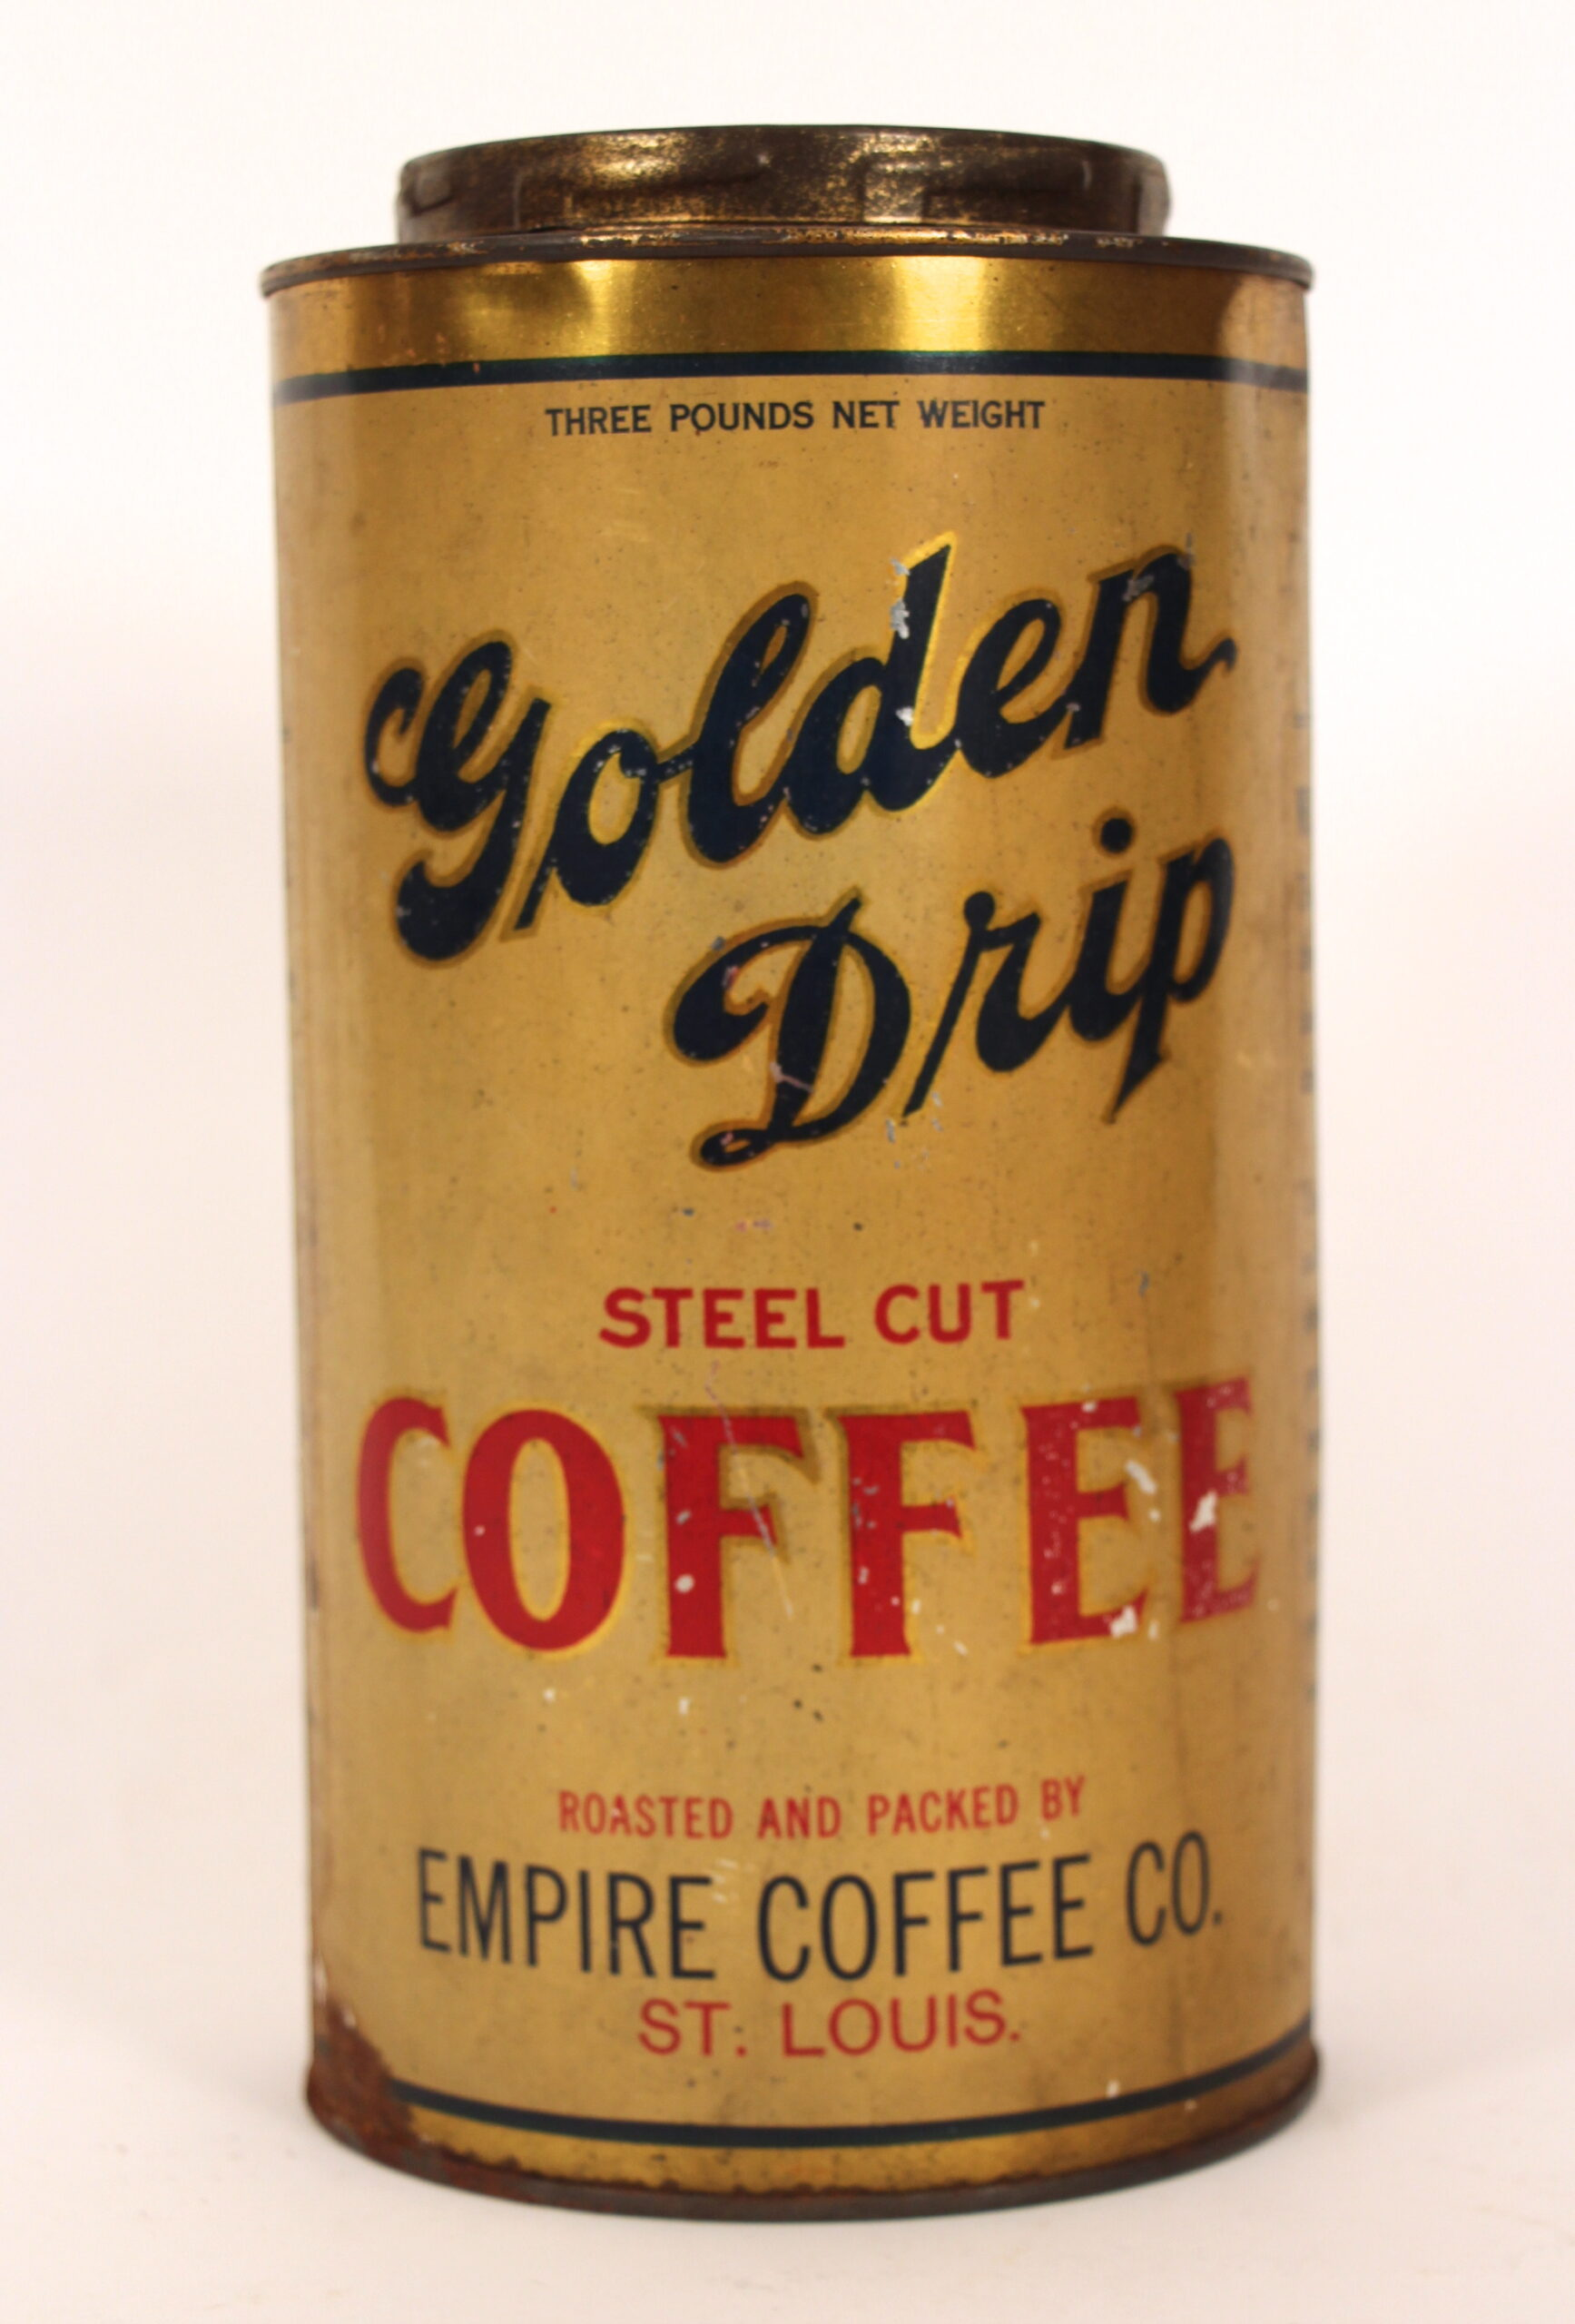 Golden Drip Coffee Tin, Empire Coffee Co., St. Louis, MO 1910